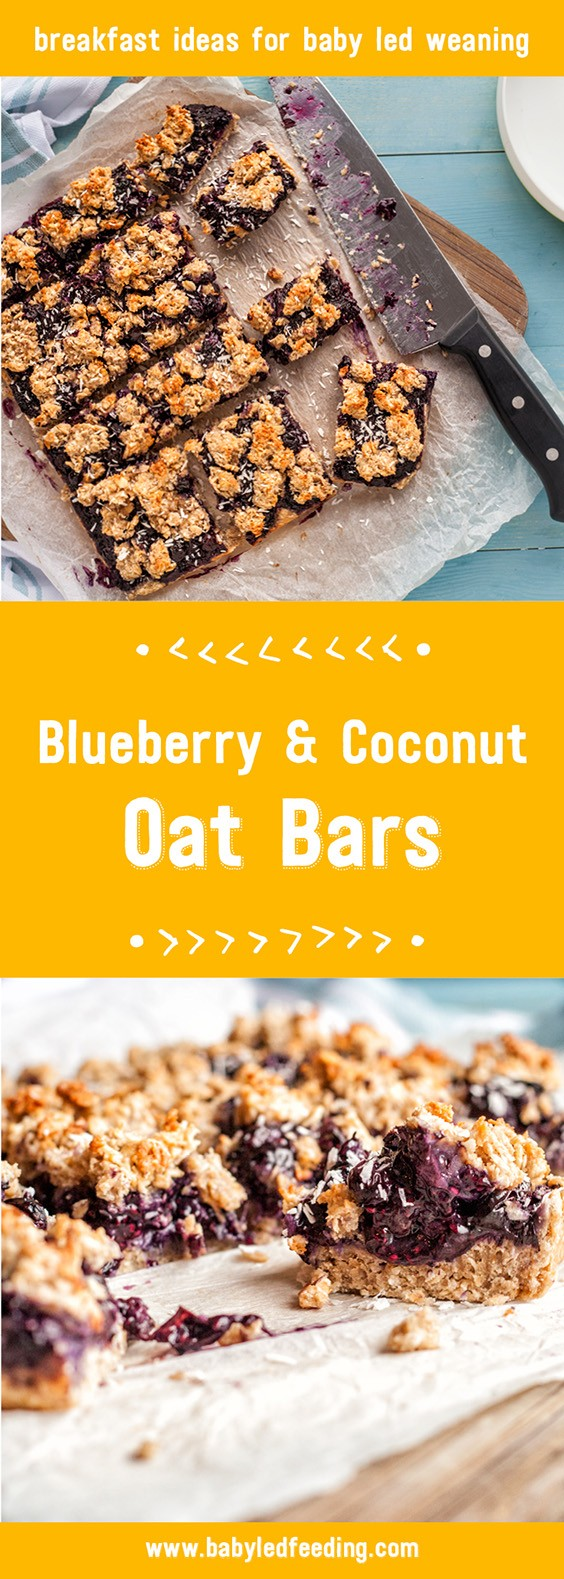 Refined sugar free healthy breakfast bars are loaded with blueberries, whole grains, and omega3 rich chia seeds! This easy recipe uses maple syrup and bananas for sweetness to save your kids from sugar overload. The texture and sweetness make these oat bars wonderful for baby led weaning. #oatbars #healthybreakfast #healthysnacks #babyledweaning #fingerfood #babyledfeeding